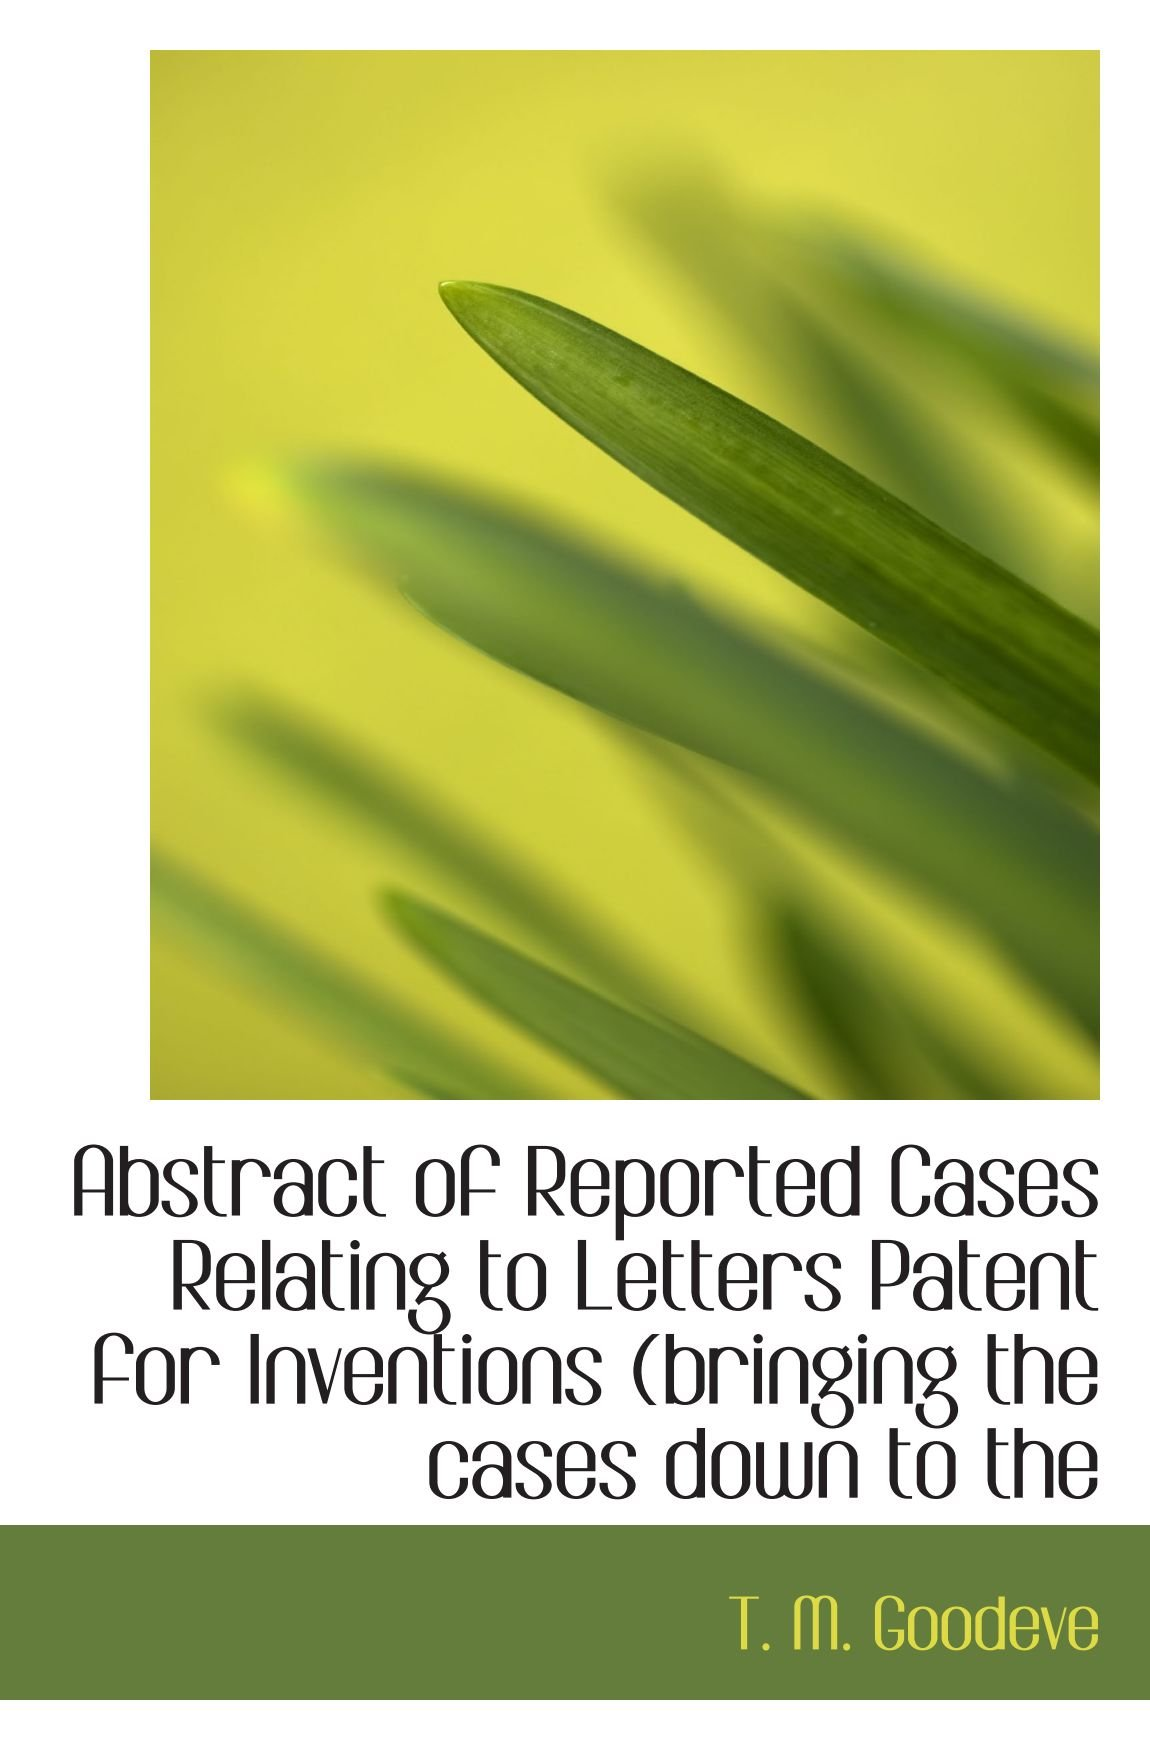 Read Online Abstract of Reported Cases Relating to Letters Patent for Inventions (bringing the cases down to the PDF